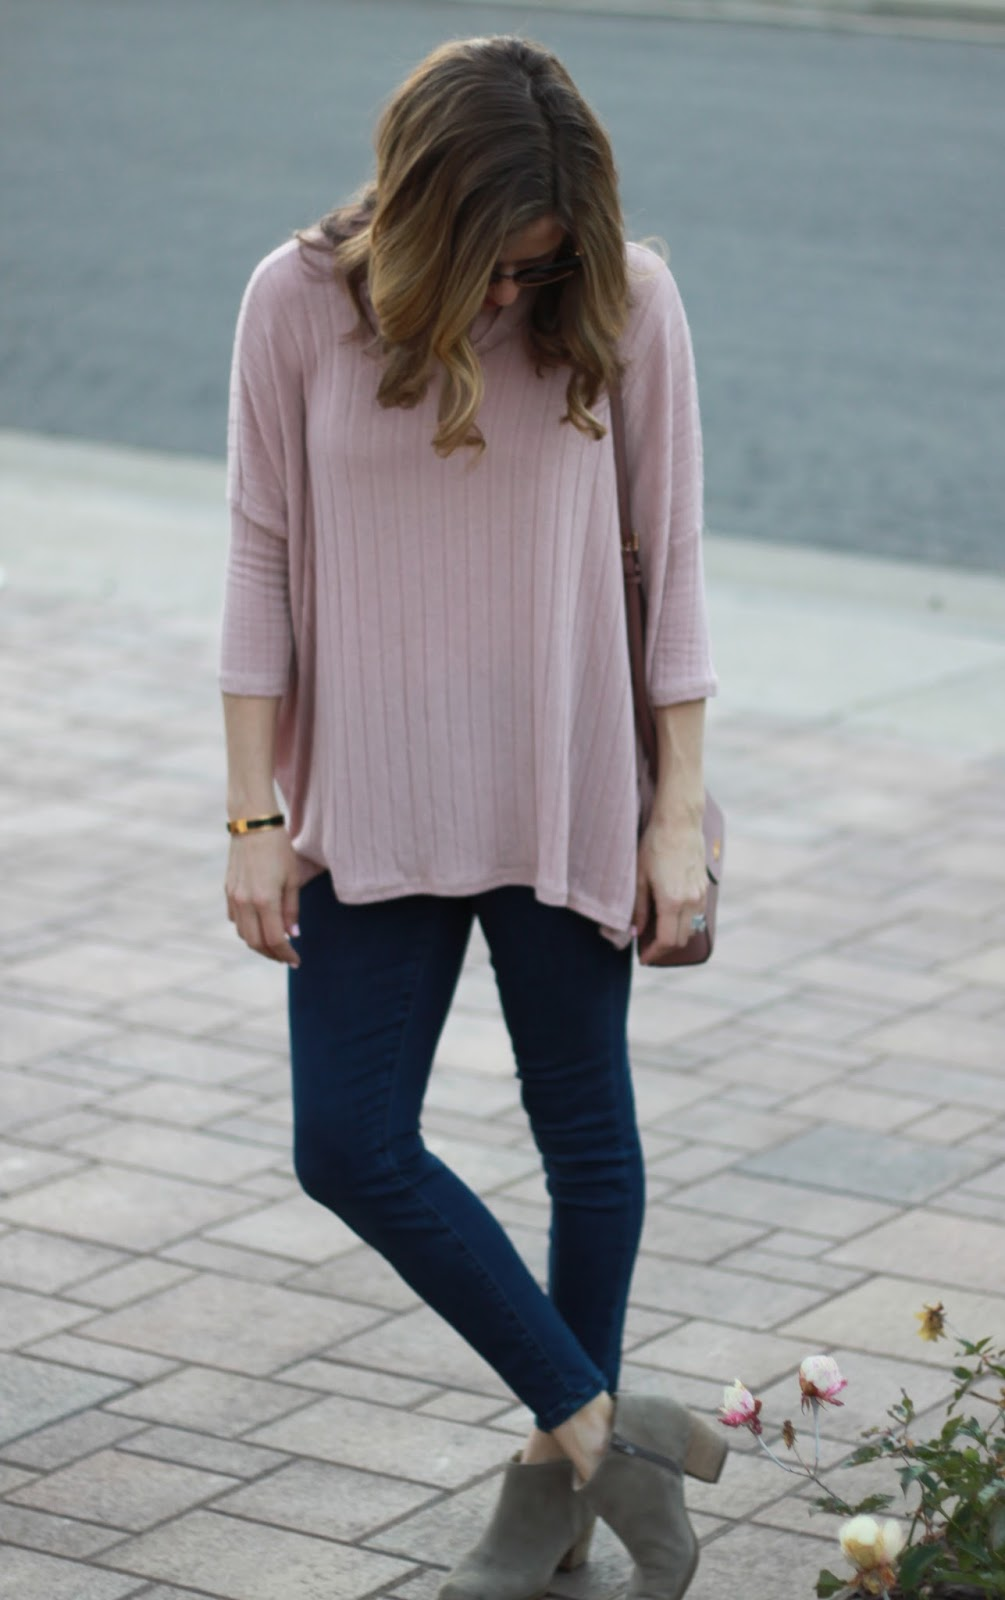 tunic and booties outfit